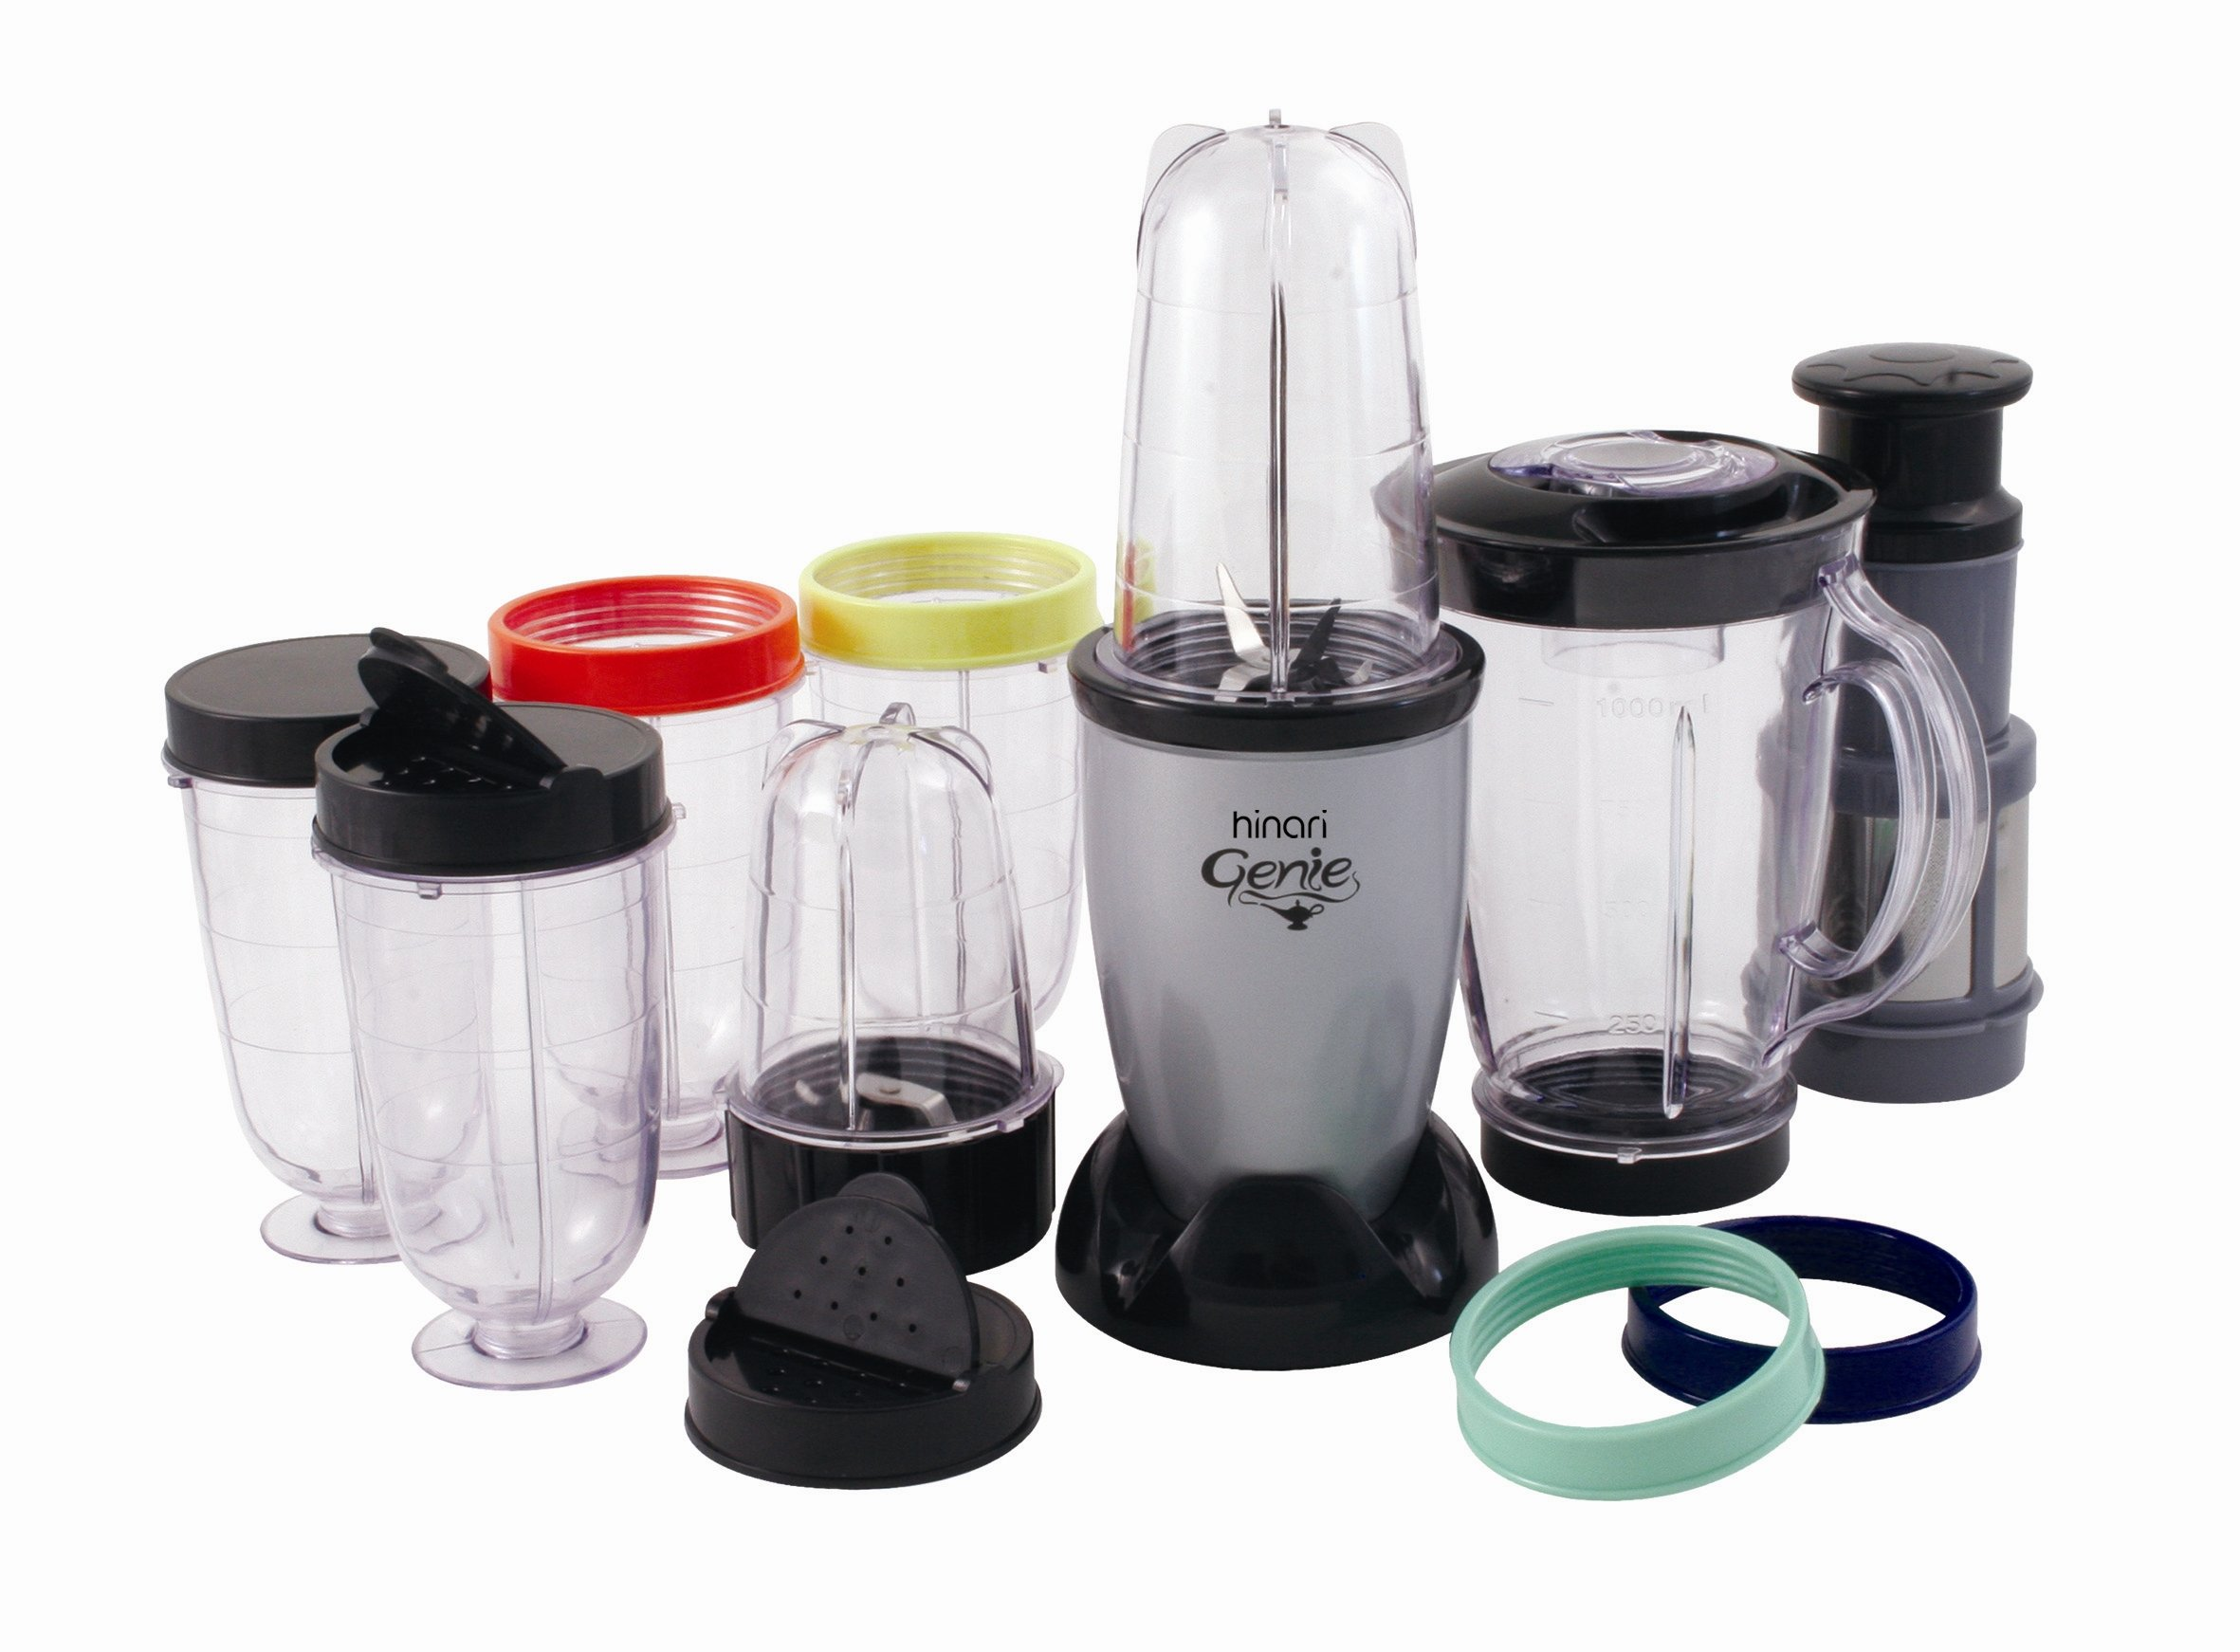 Customer Reviews Hinari MB2The Genie Multi-Attachment Blender